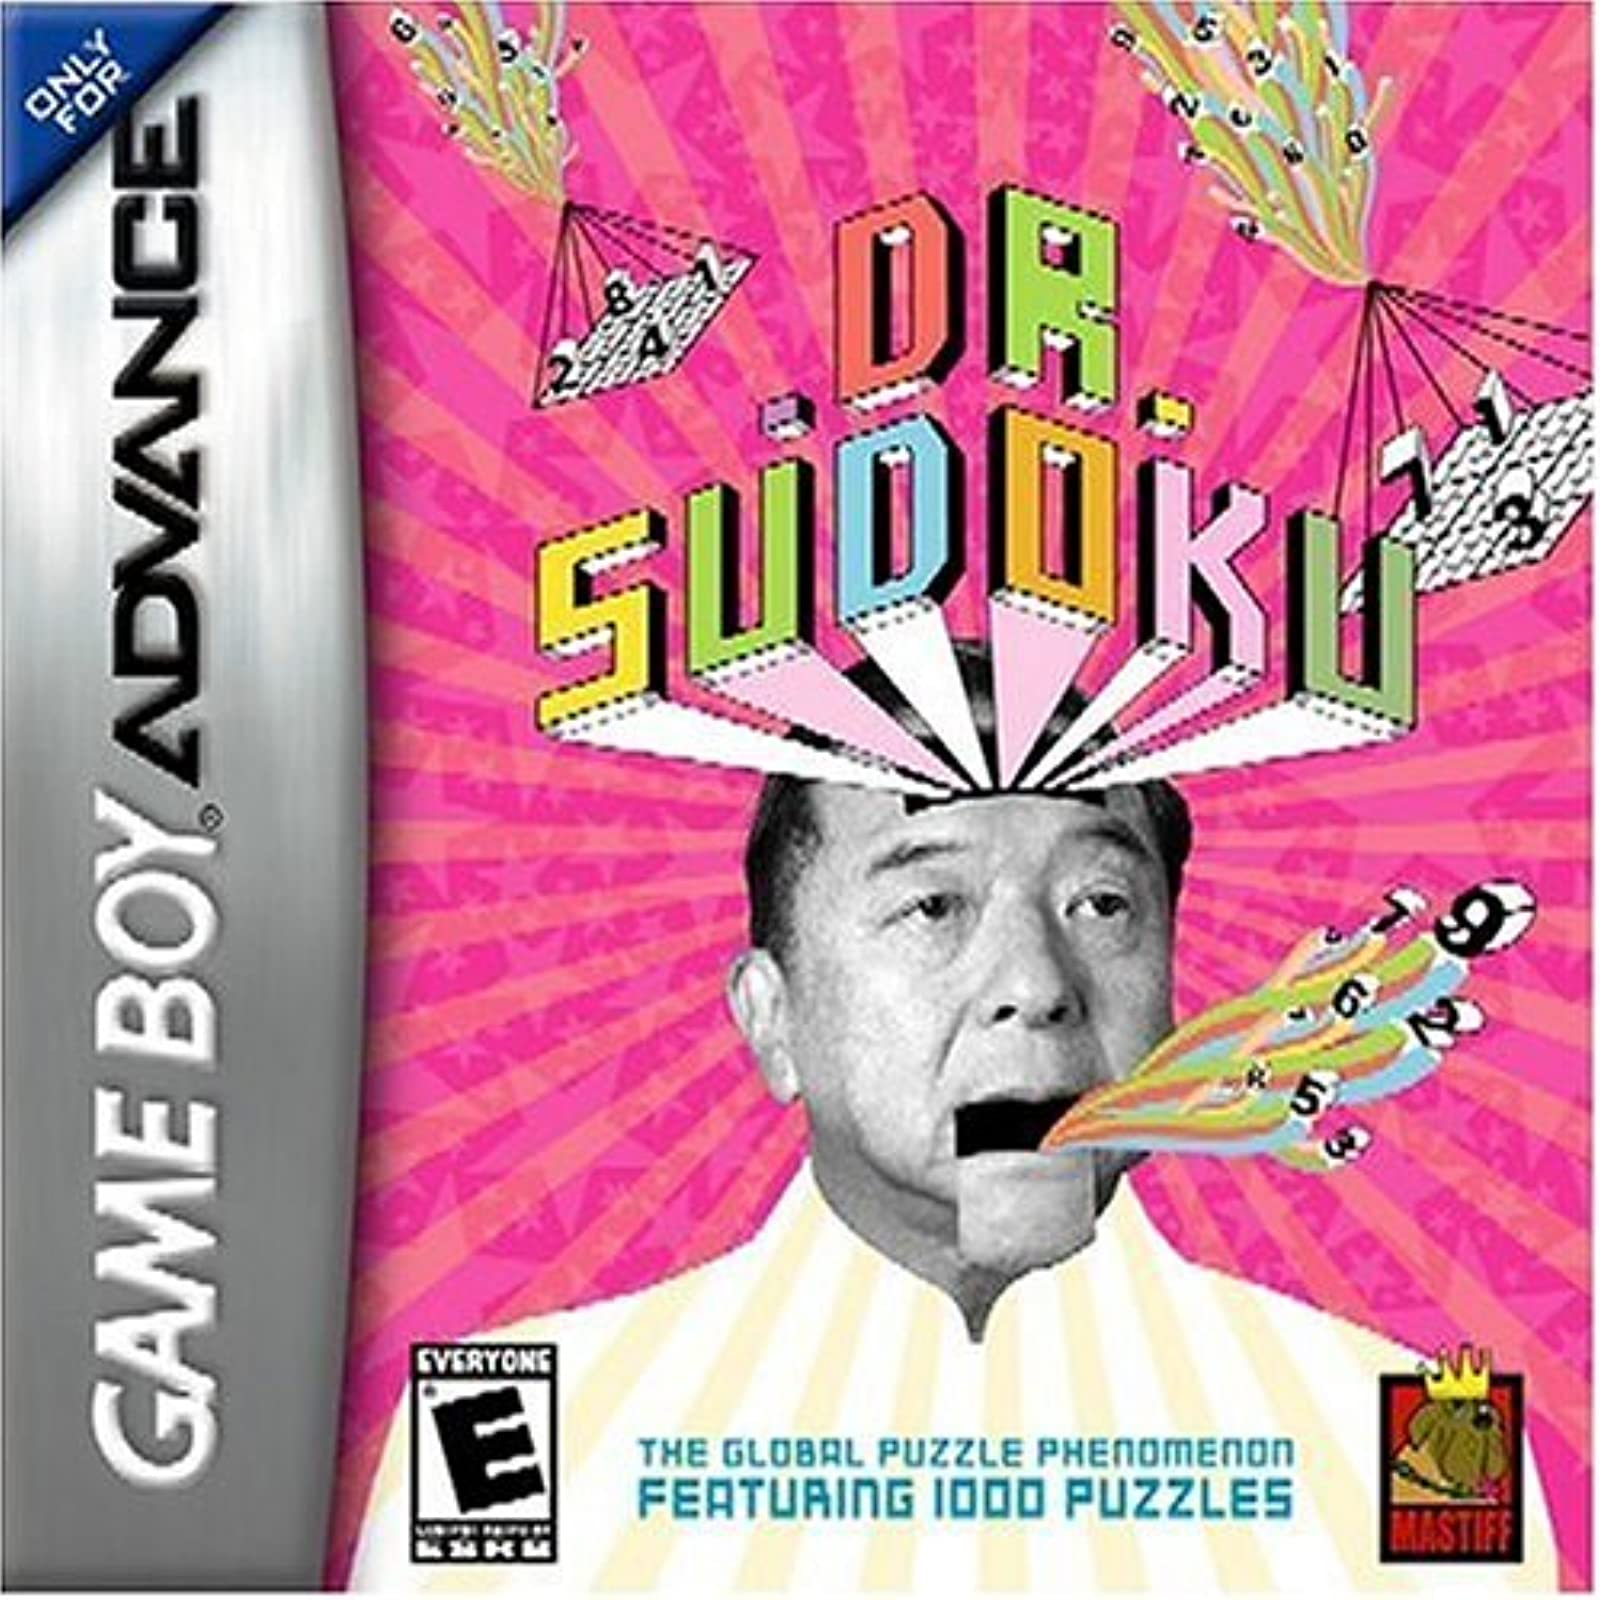 Dr Sudoku For GBA Gameboy Advance Puzzle